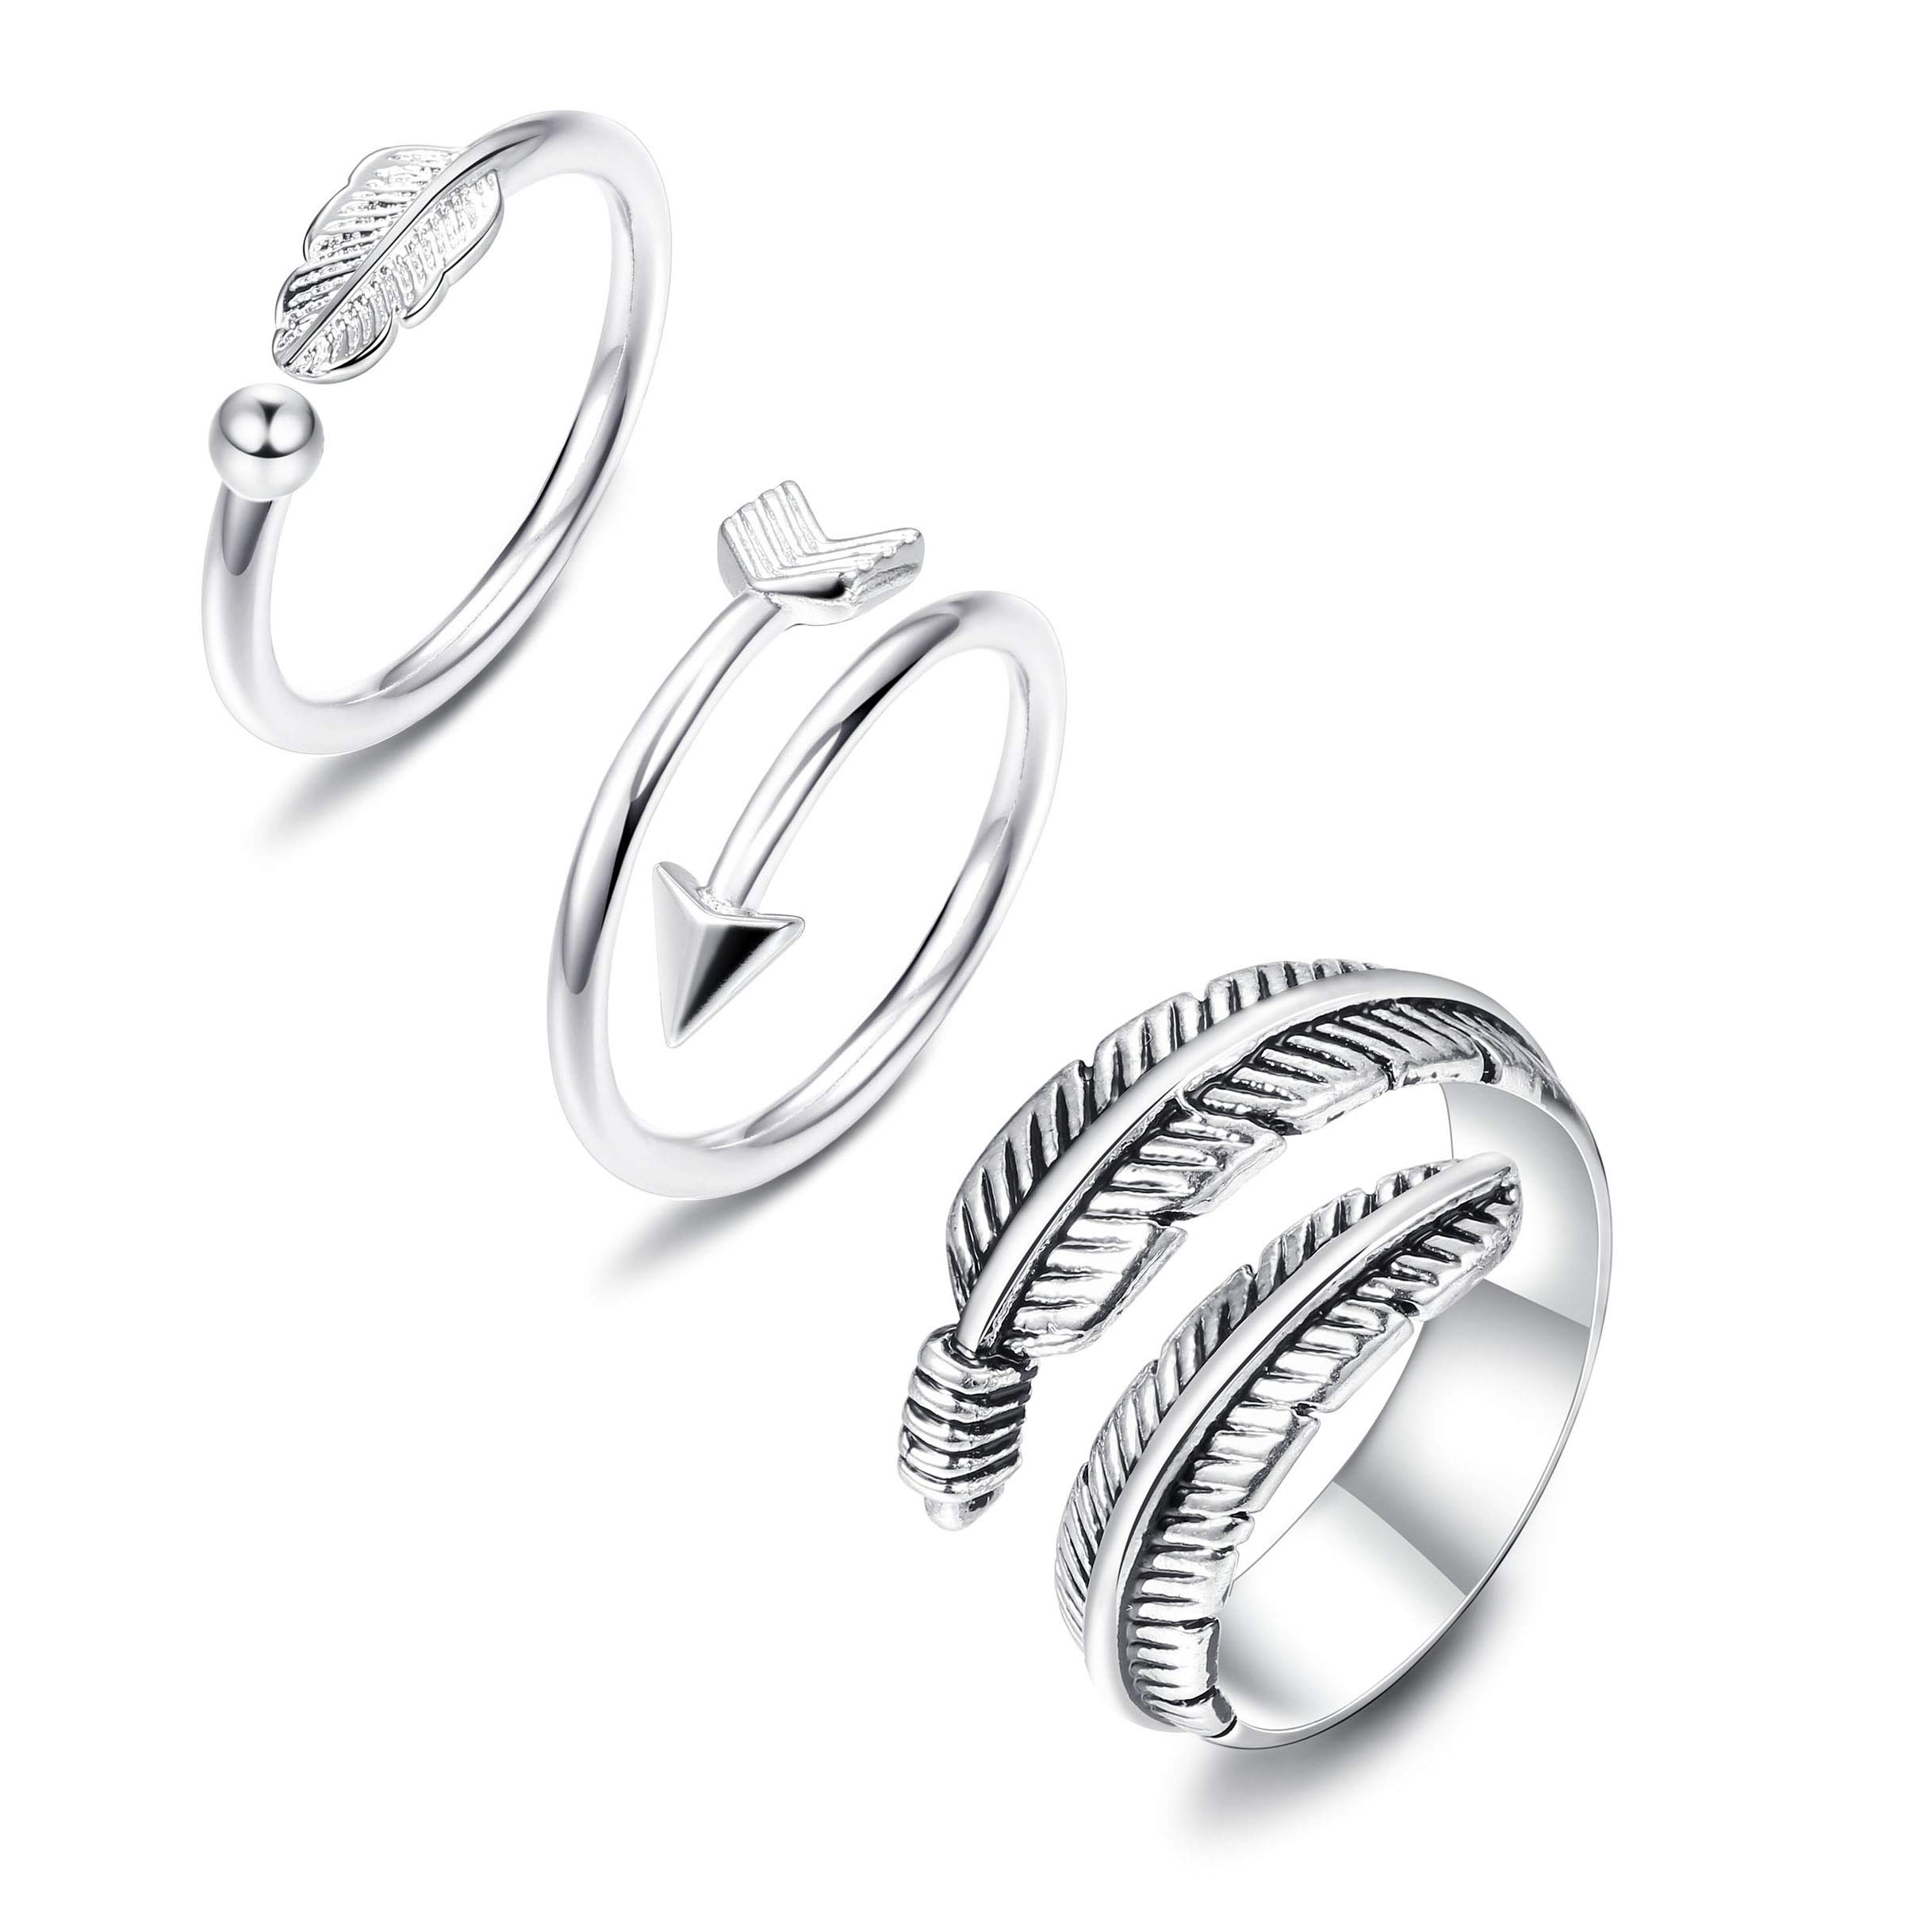 JOERICA 3 Pcs Silver Adjustable Open Rings Women Girls Feather Thumb Stackable Knuckle Ring Sideways Arrow Horizontal Ring by JOERICA